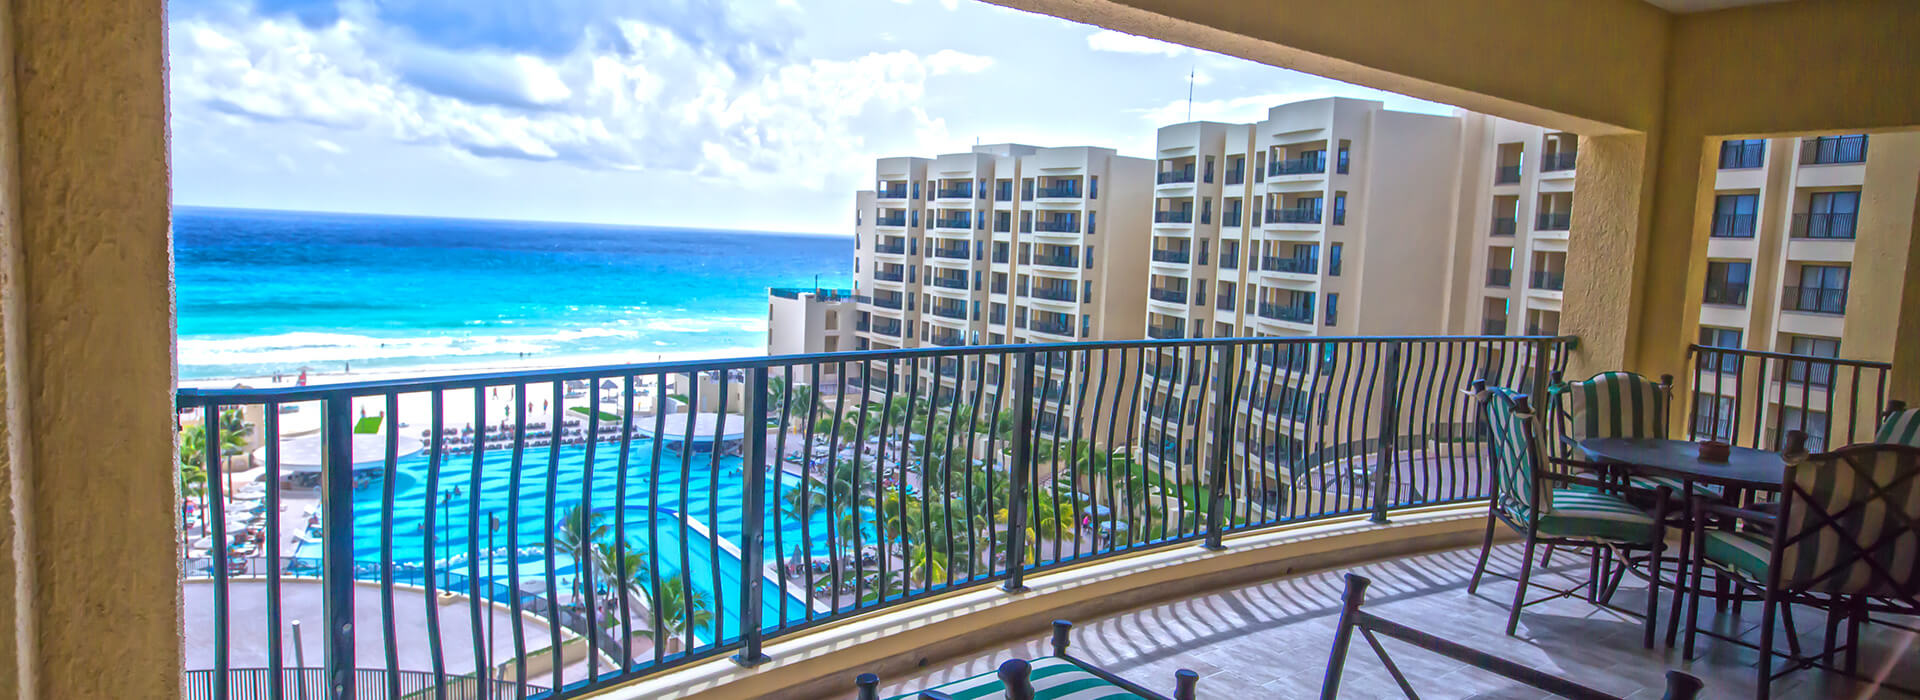 Ocean view villas one bedroom with private balcony in Cancun All Inclusive Resort